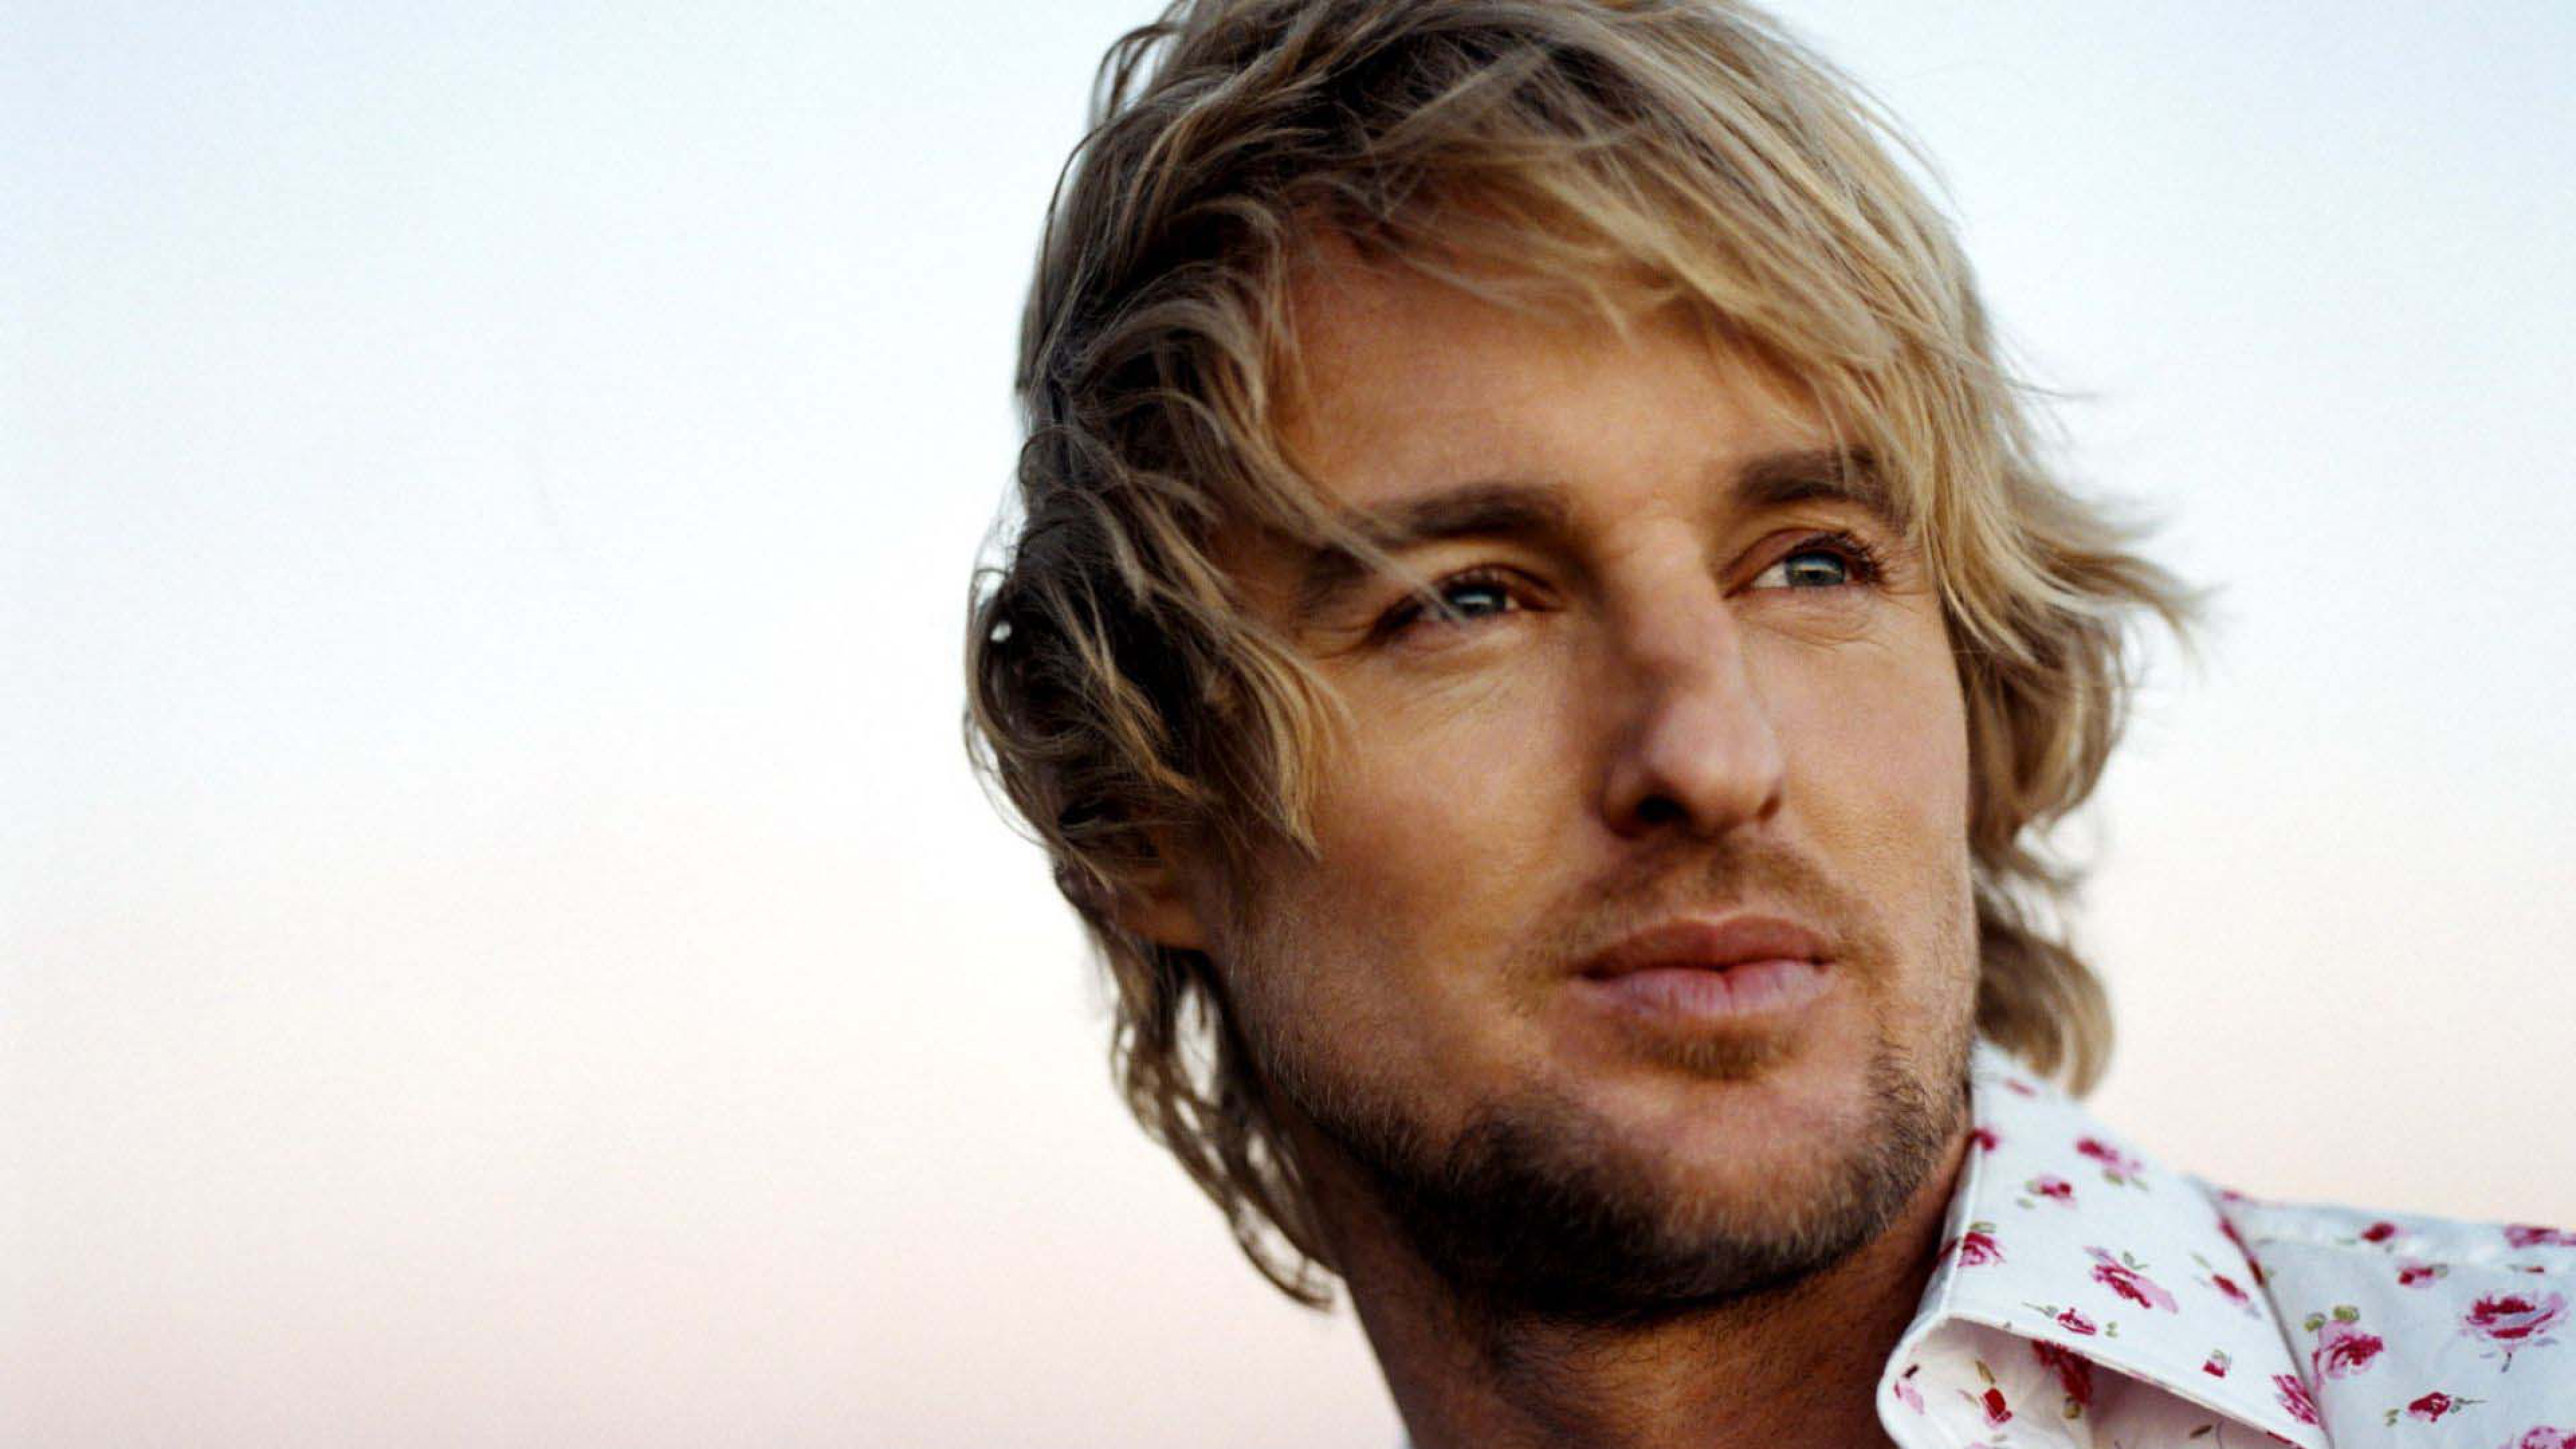 Owen Wilson facts